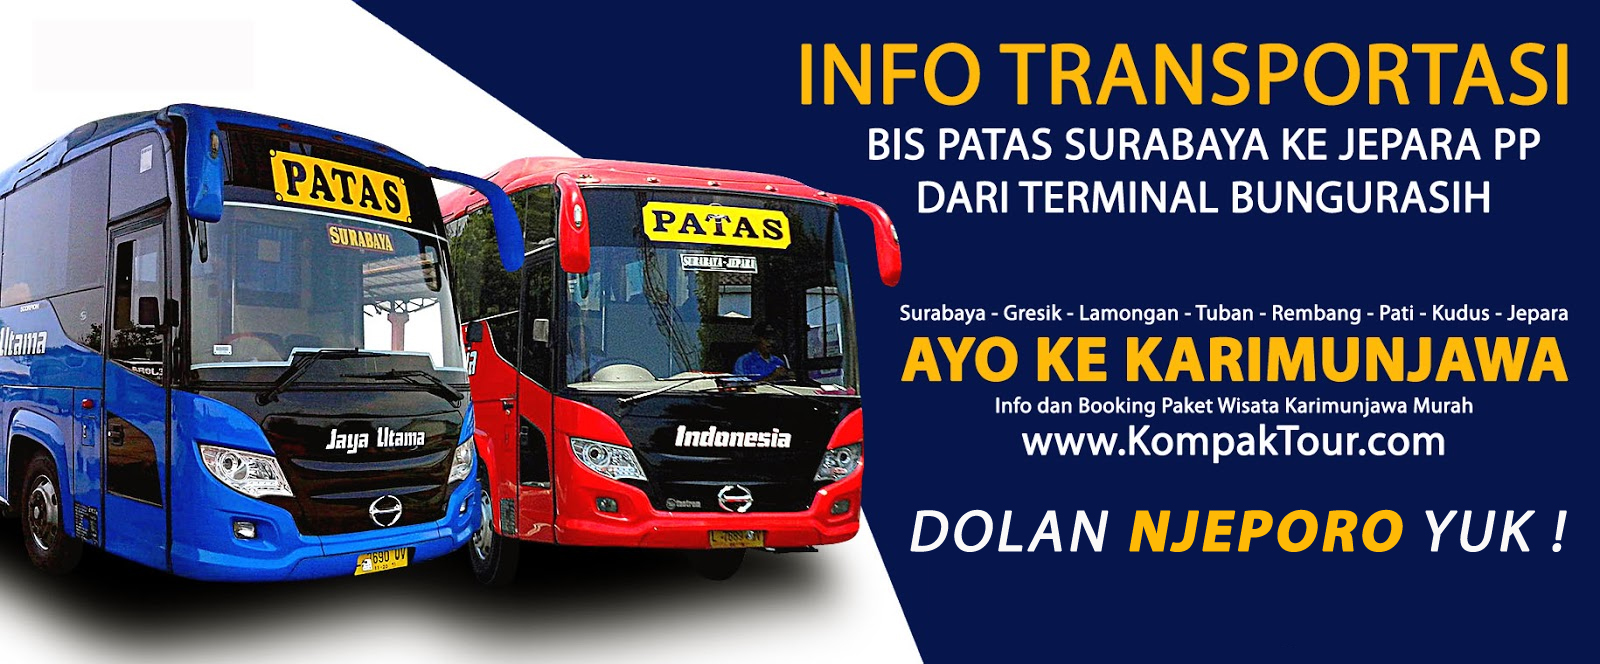 INFO TRANSPORTASI TRAVEL / BUS KE JEPARA | Open Trip Travel Paket